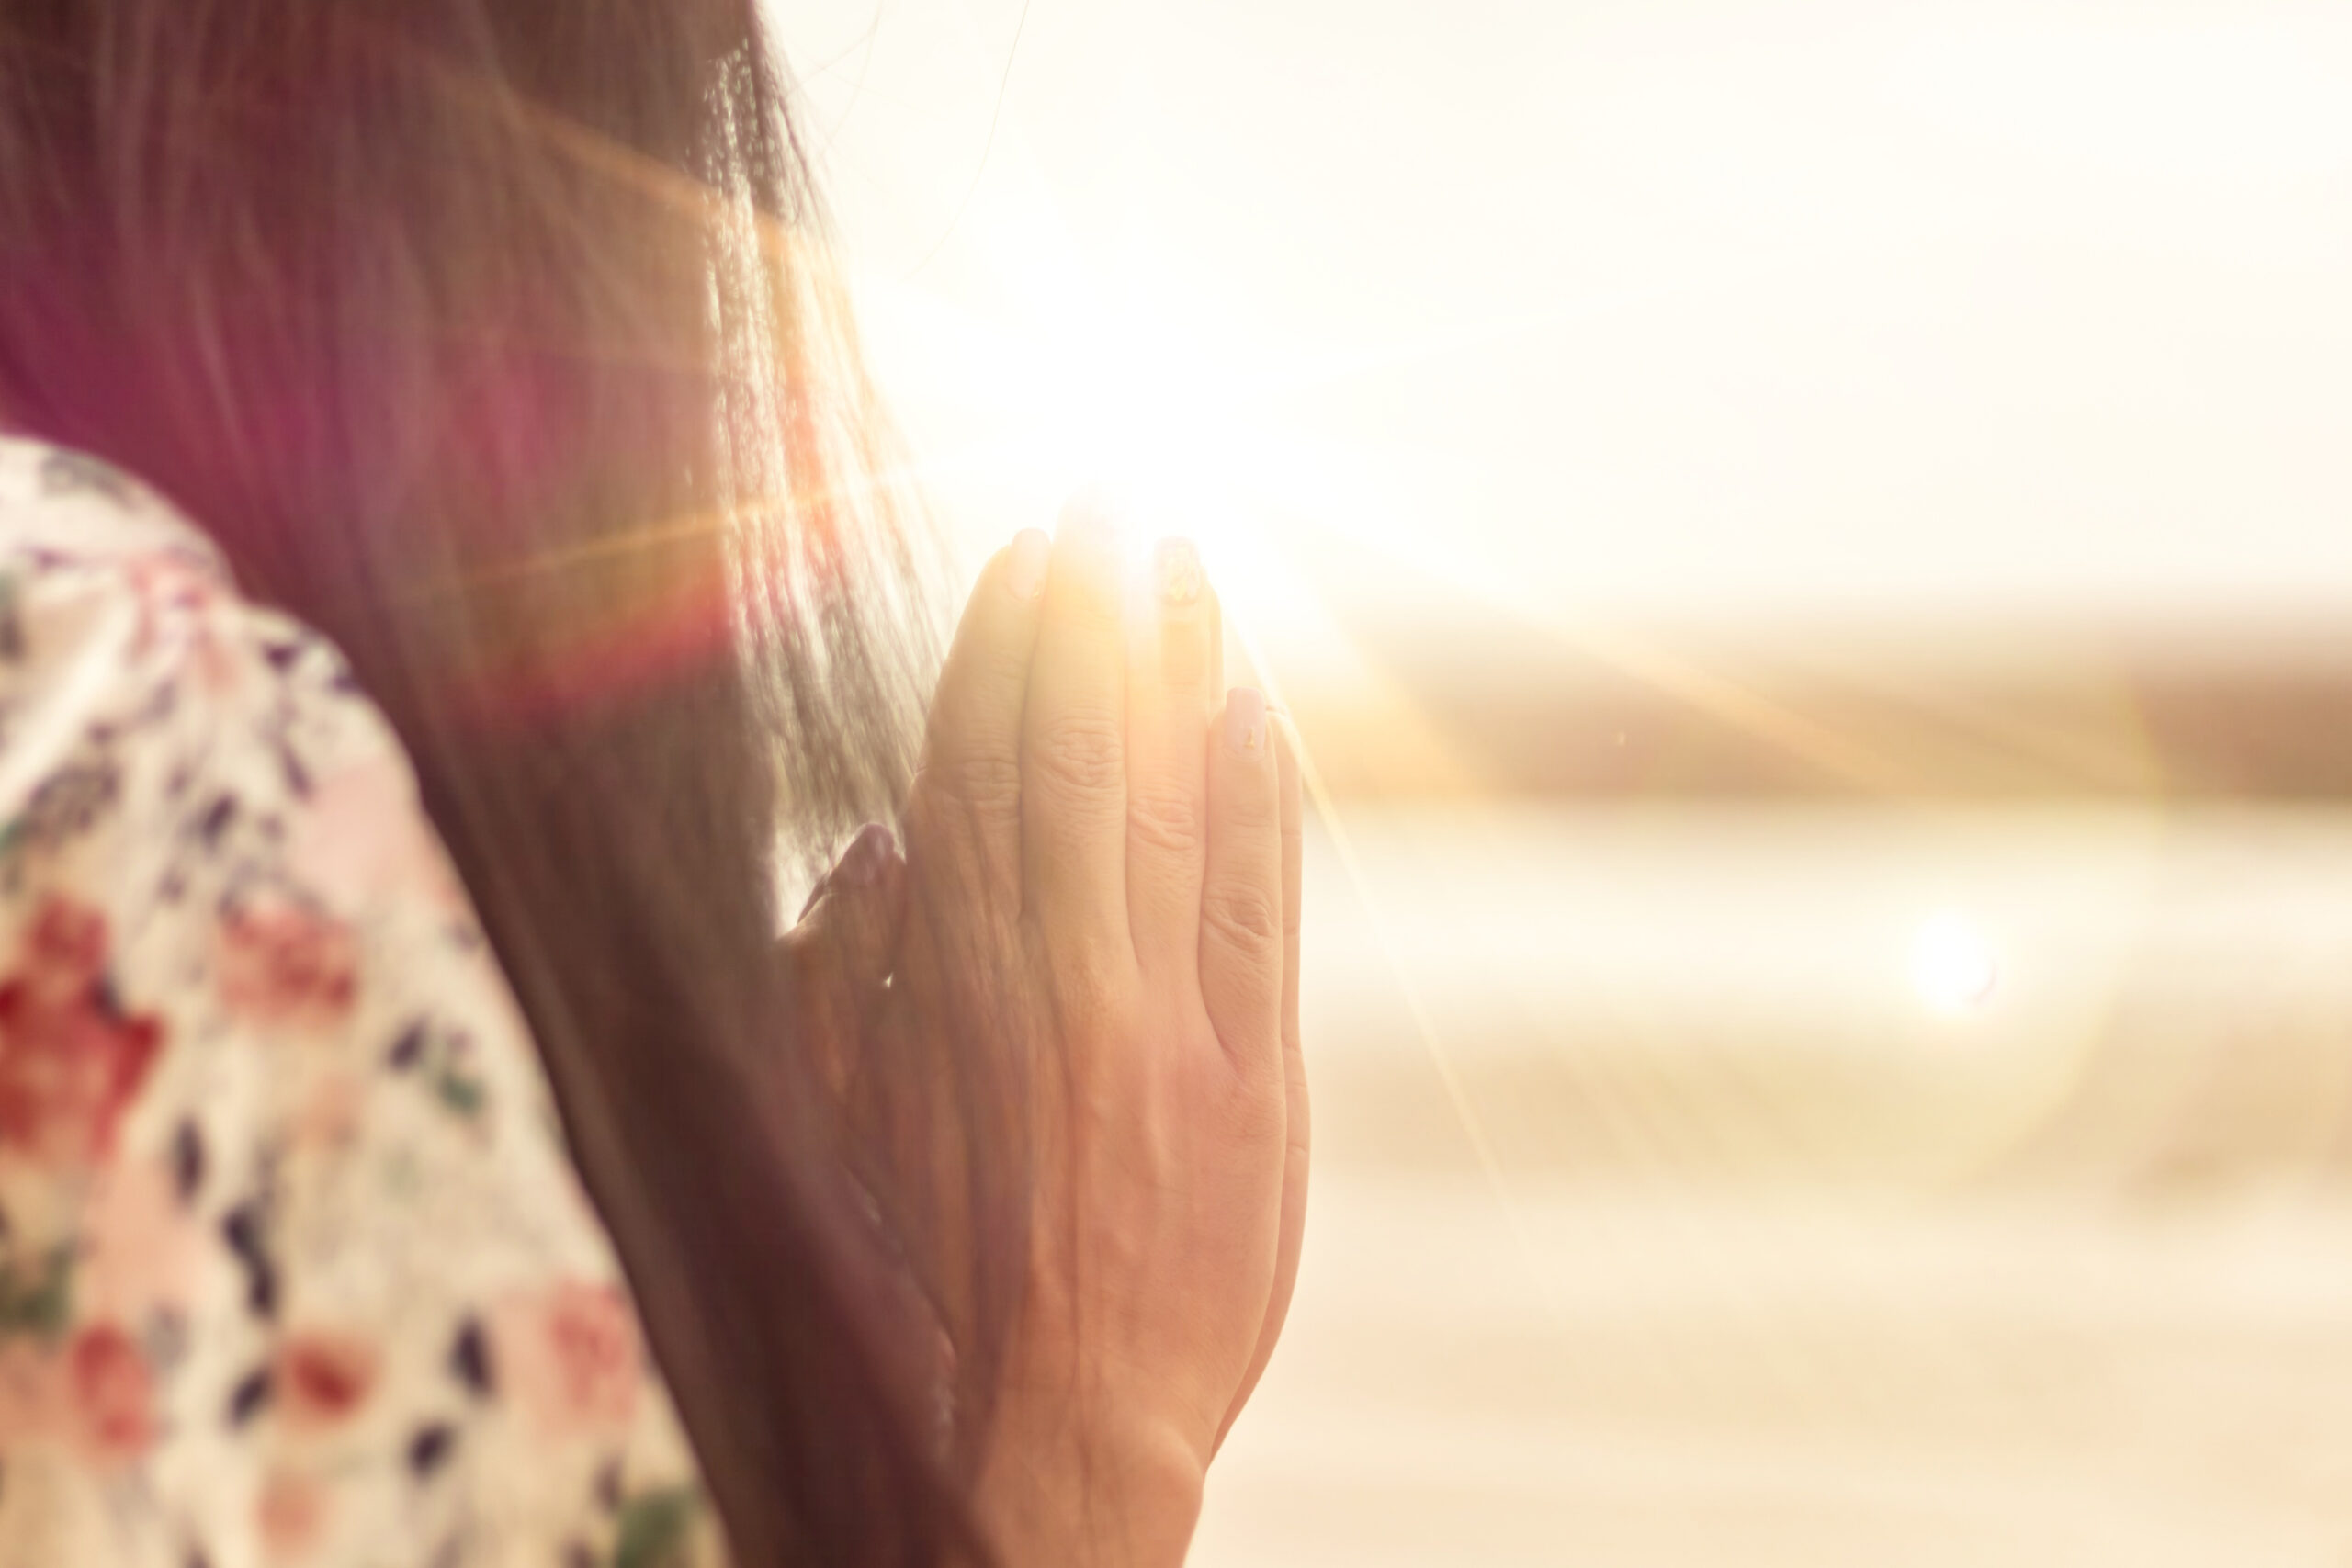 A woman praying hand for blessings When the sun goes down Hope for a happy life